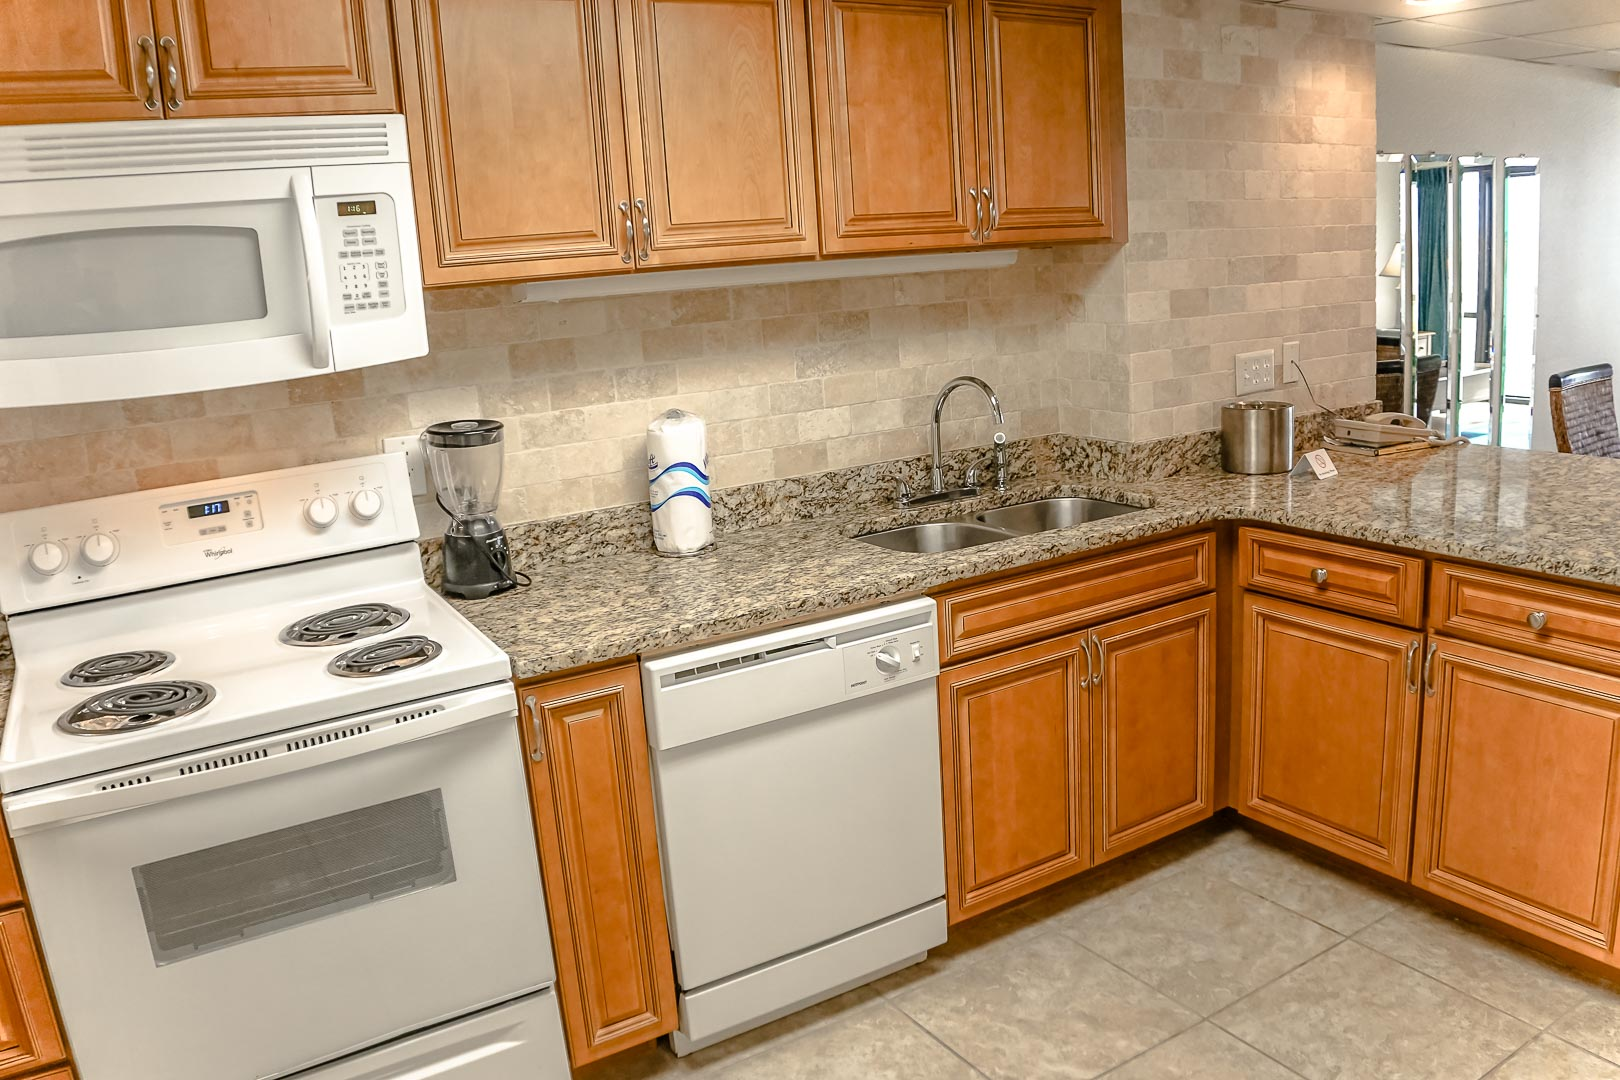 A renovated kitchen at VRI's Landmark Holiday Beach Resort in Panama City, Florida.